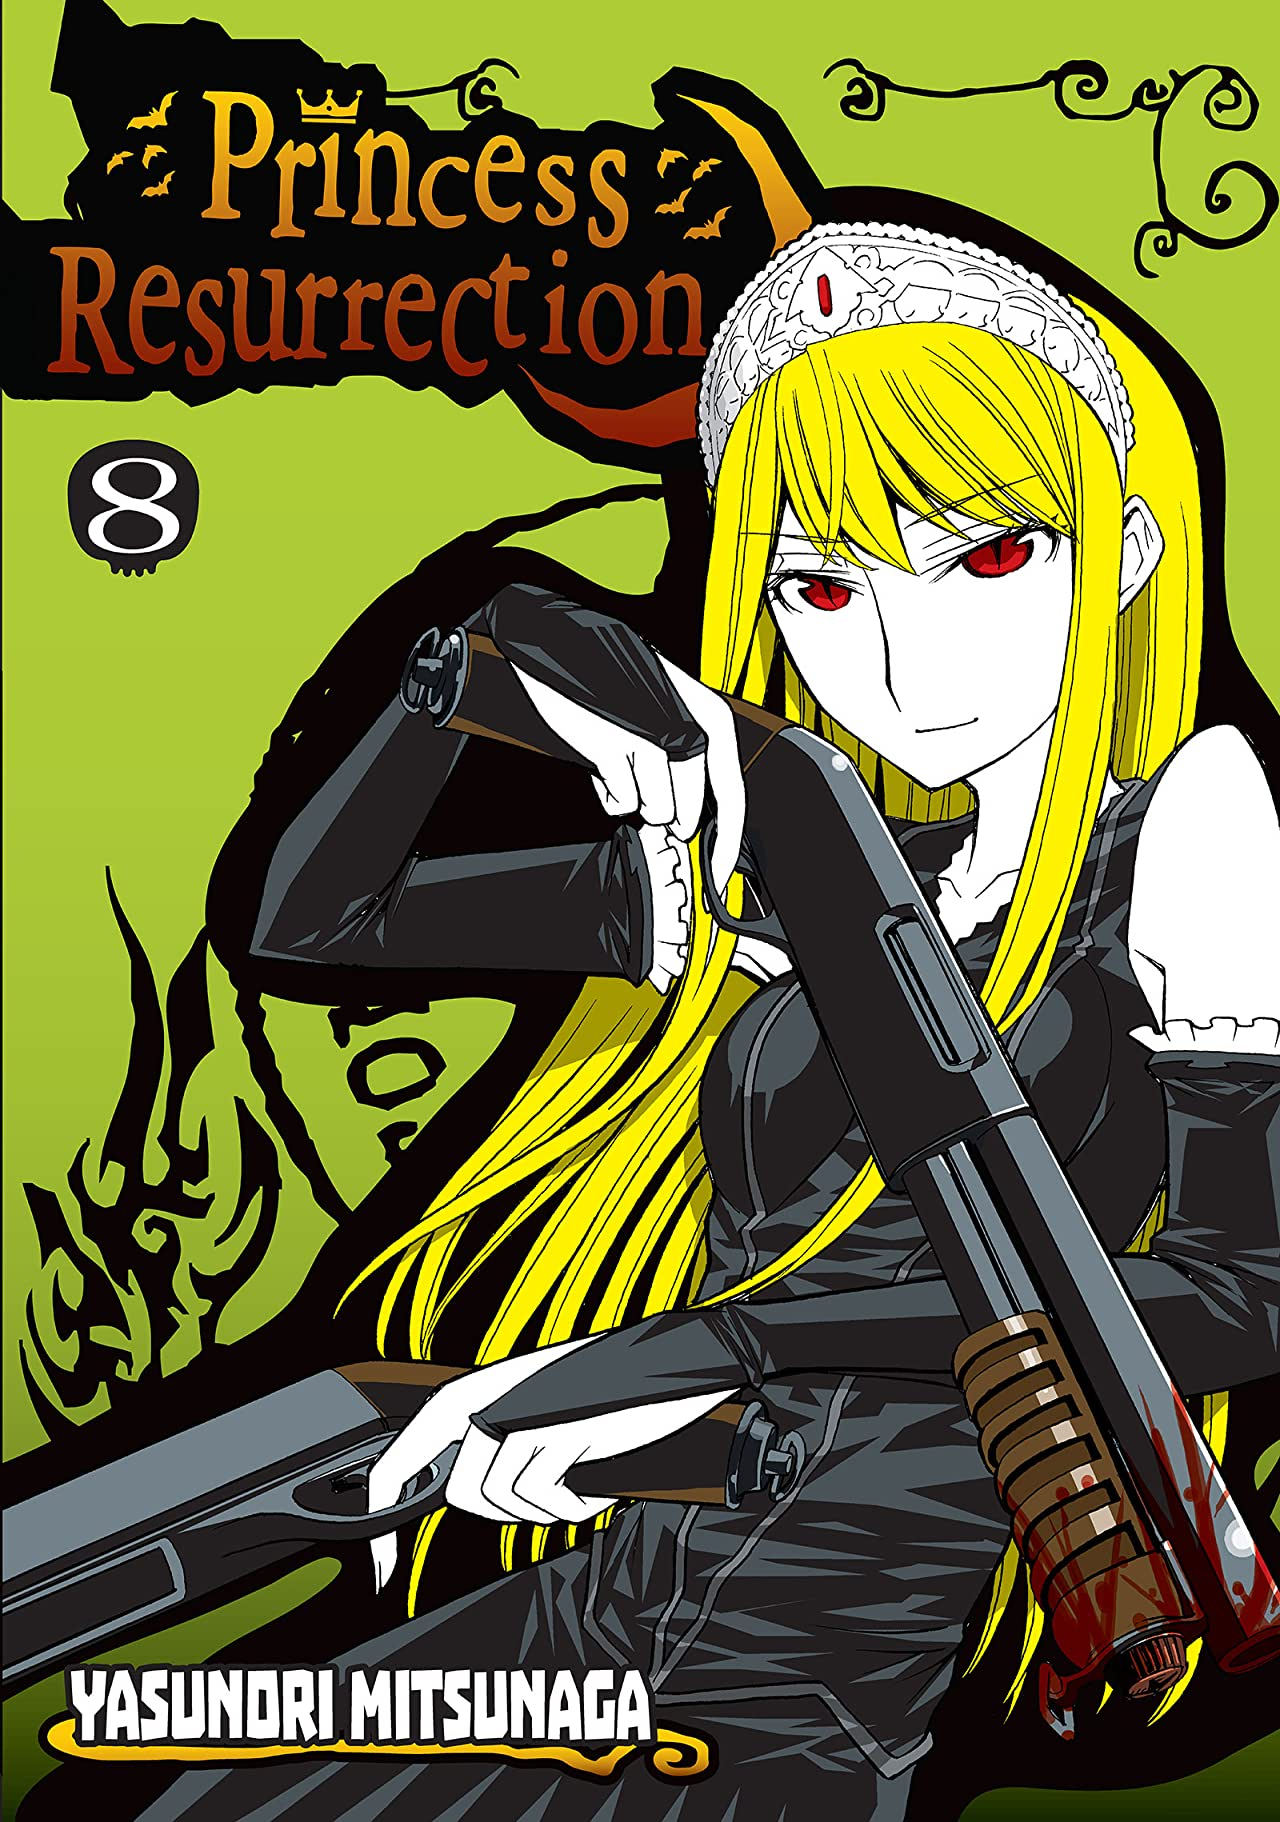 Princess Resurrection Vol. 8